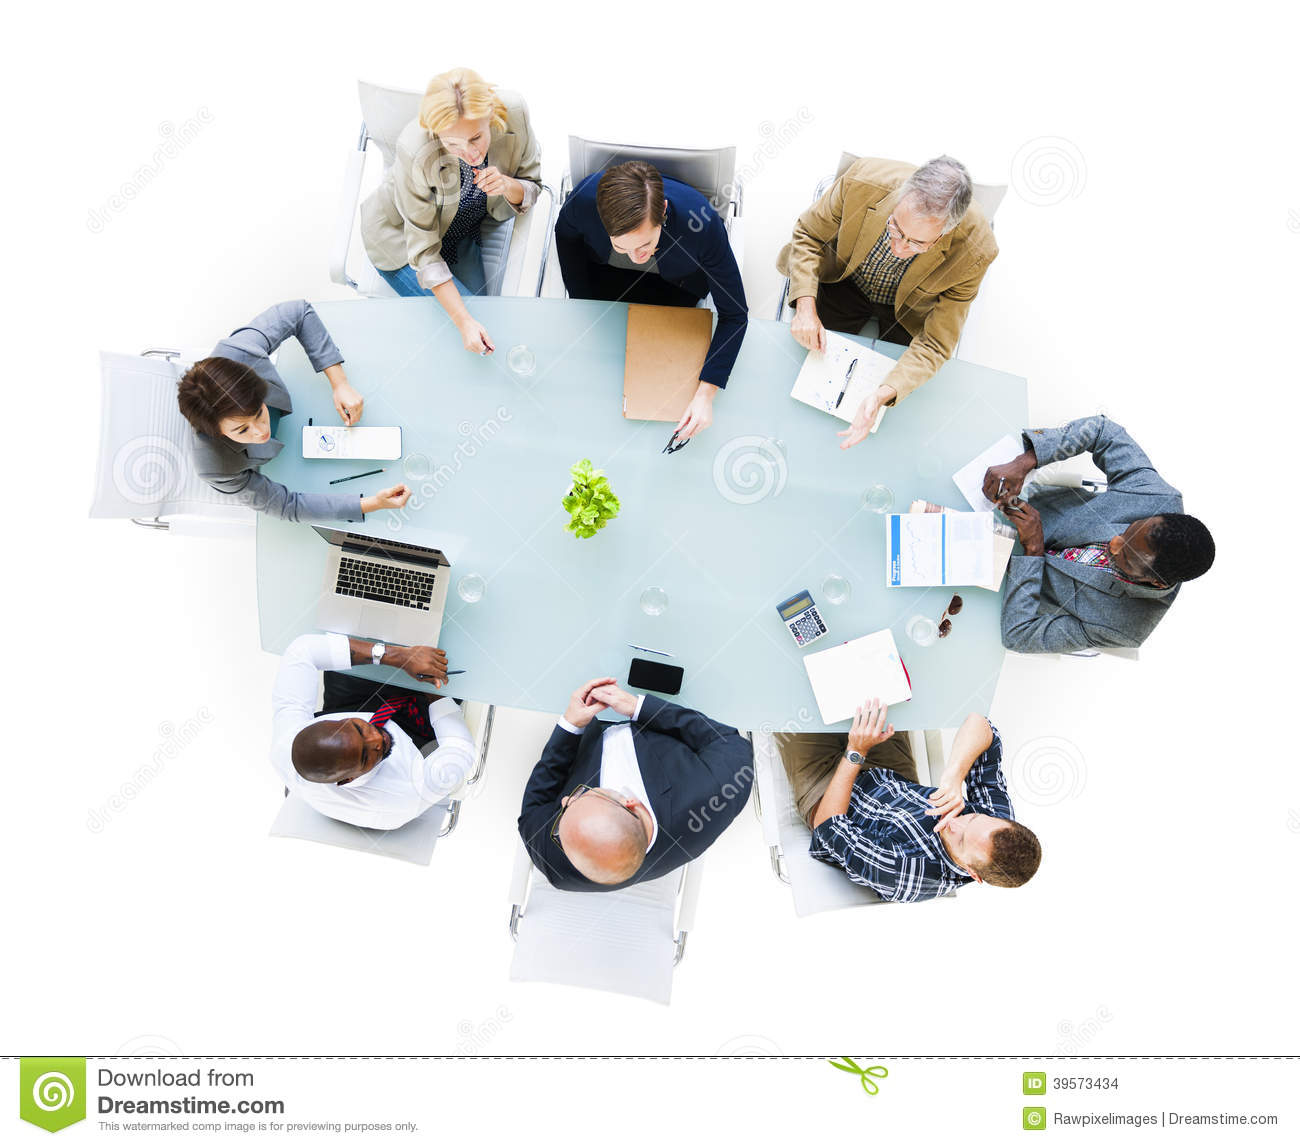 Group Of Business People Around The Conference Table Having A Meeting.